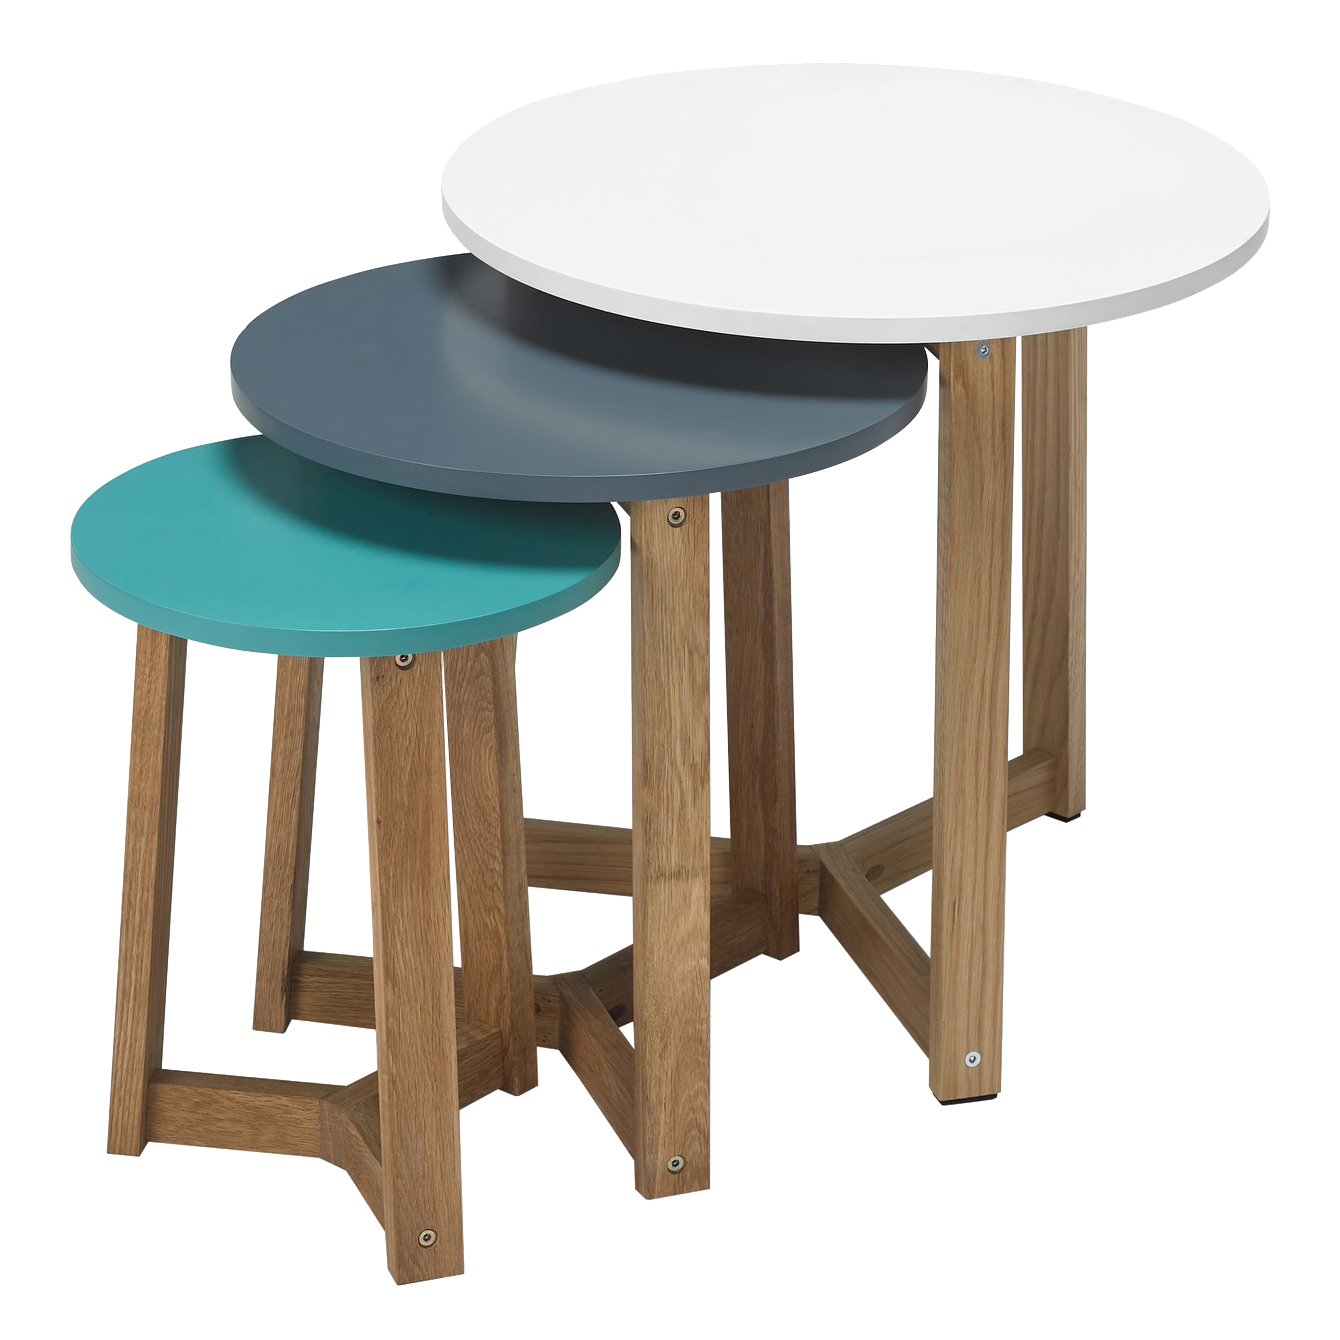 Nests of Tables